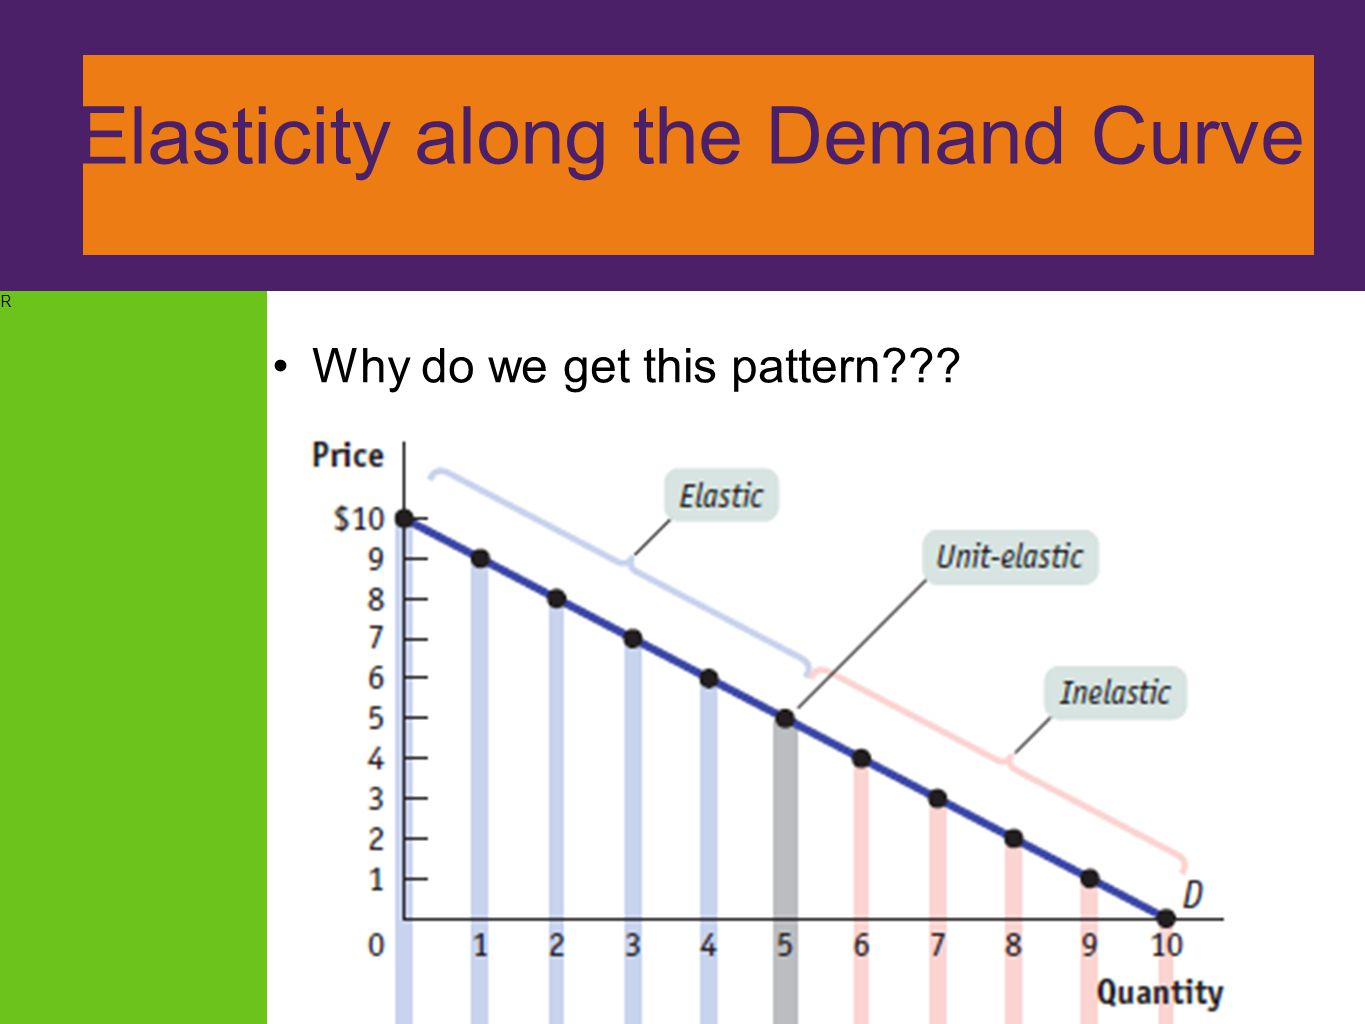 R ElElasticity along the Demand Curve Why do we get this pattern???